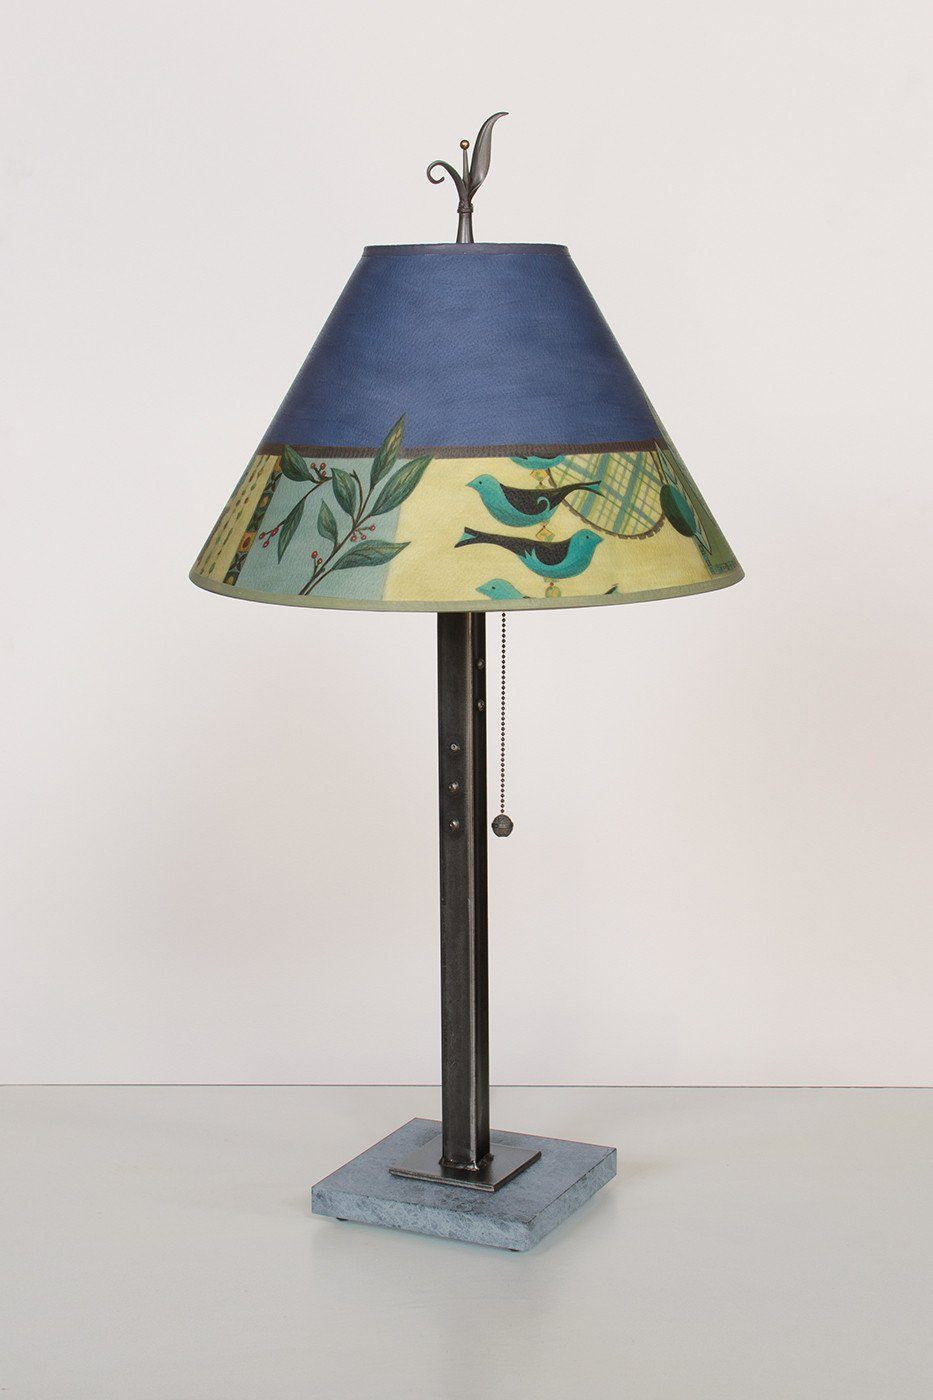 Steel Table Lamp on Marble with Medium Conical Shade in New Capri Periwinkle - Lit